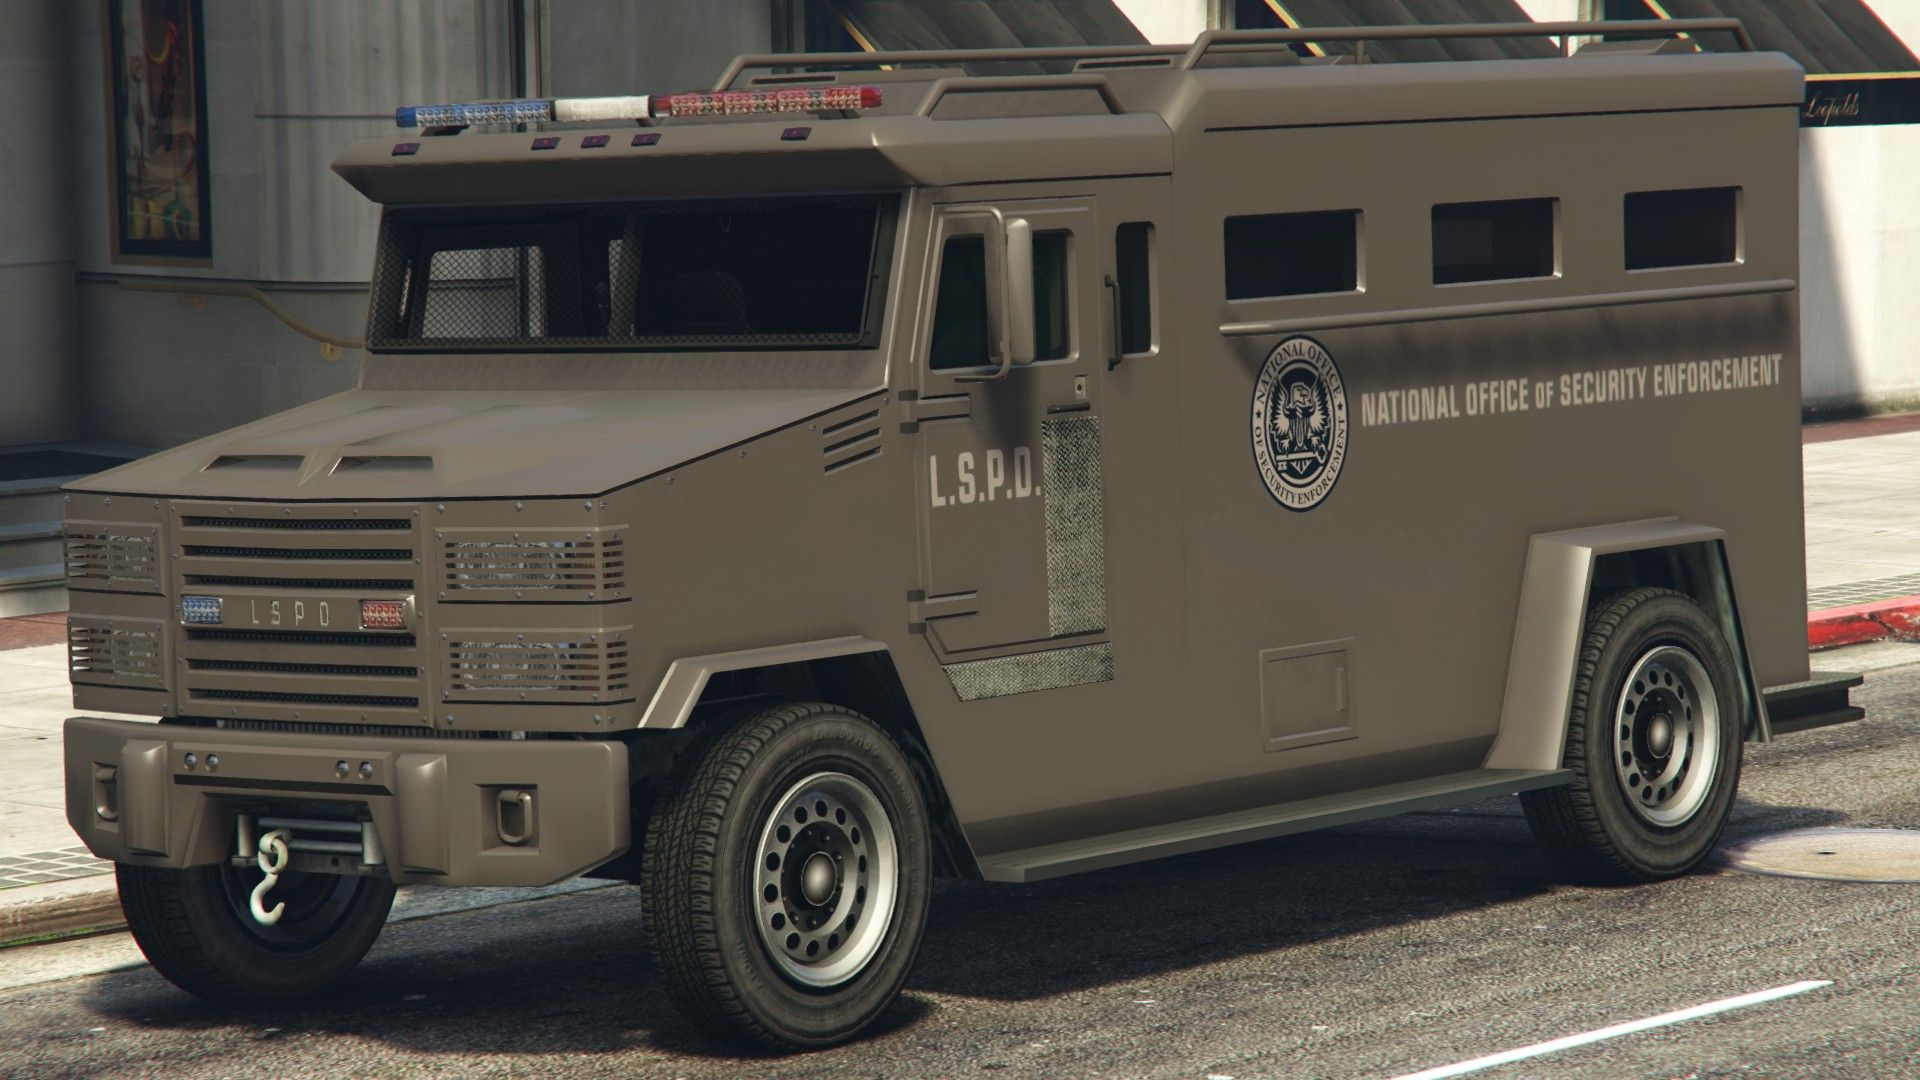 b61f268fa6fdc6ce66ab0cb29ed55c70 - How To Get A Armored Truck In Gta 5